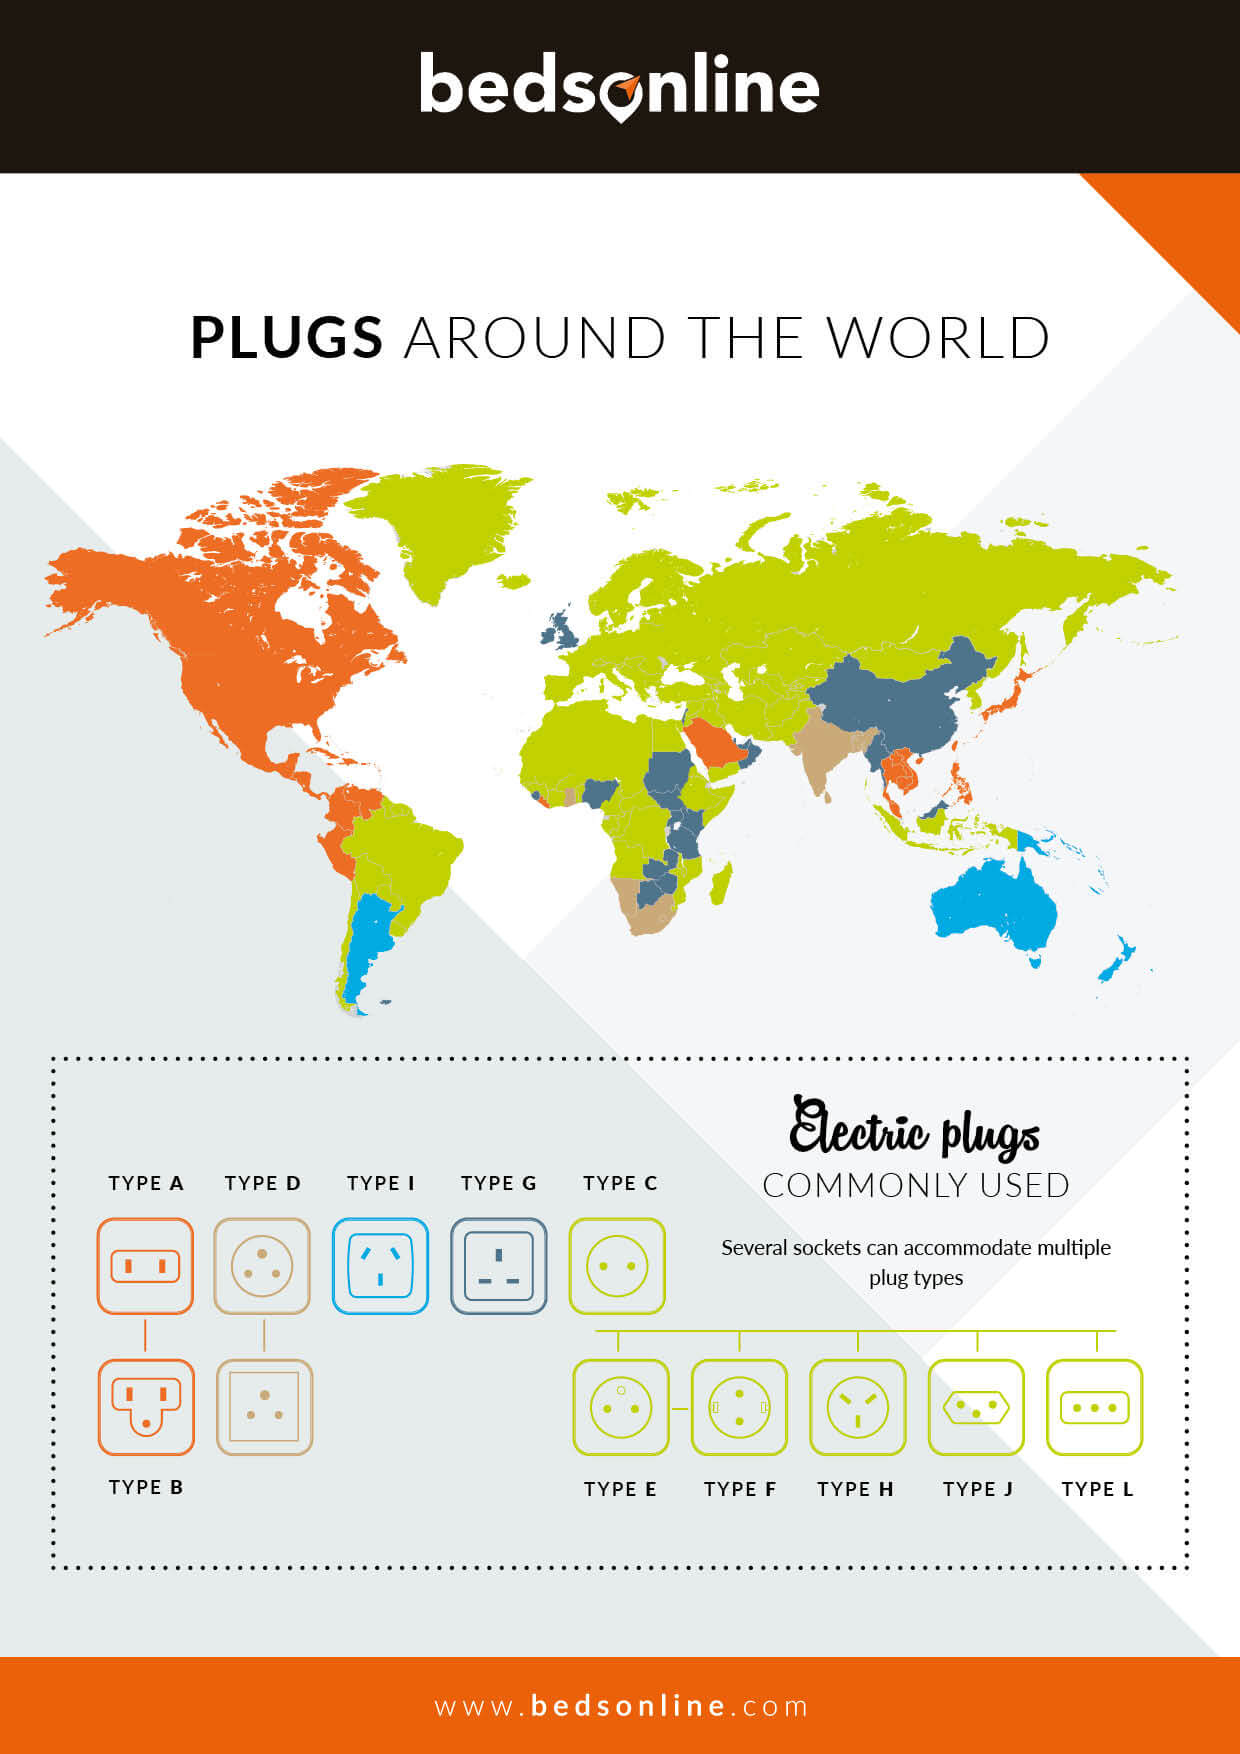 A worldwide map of electrical sockets | Bedsonline